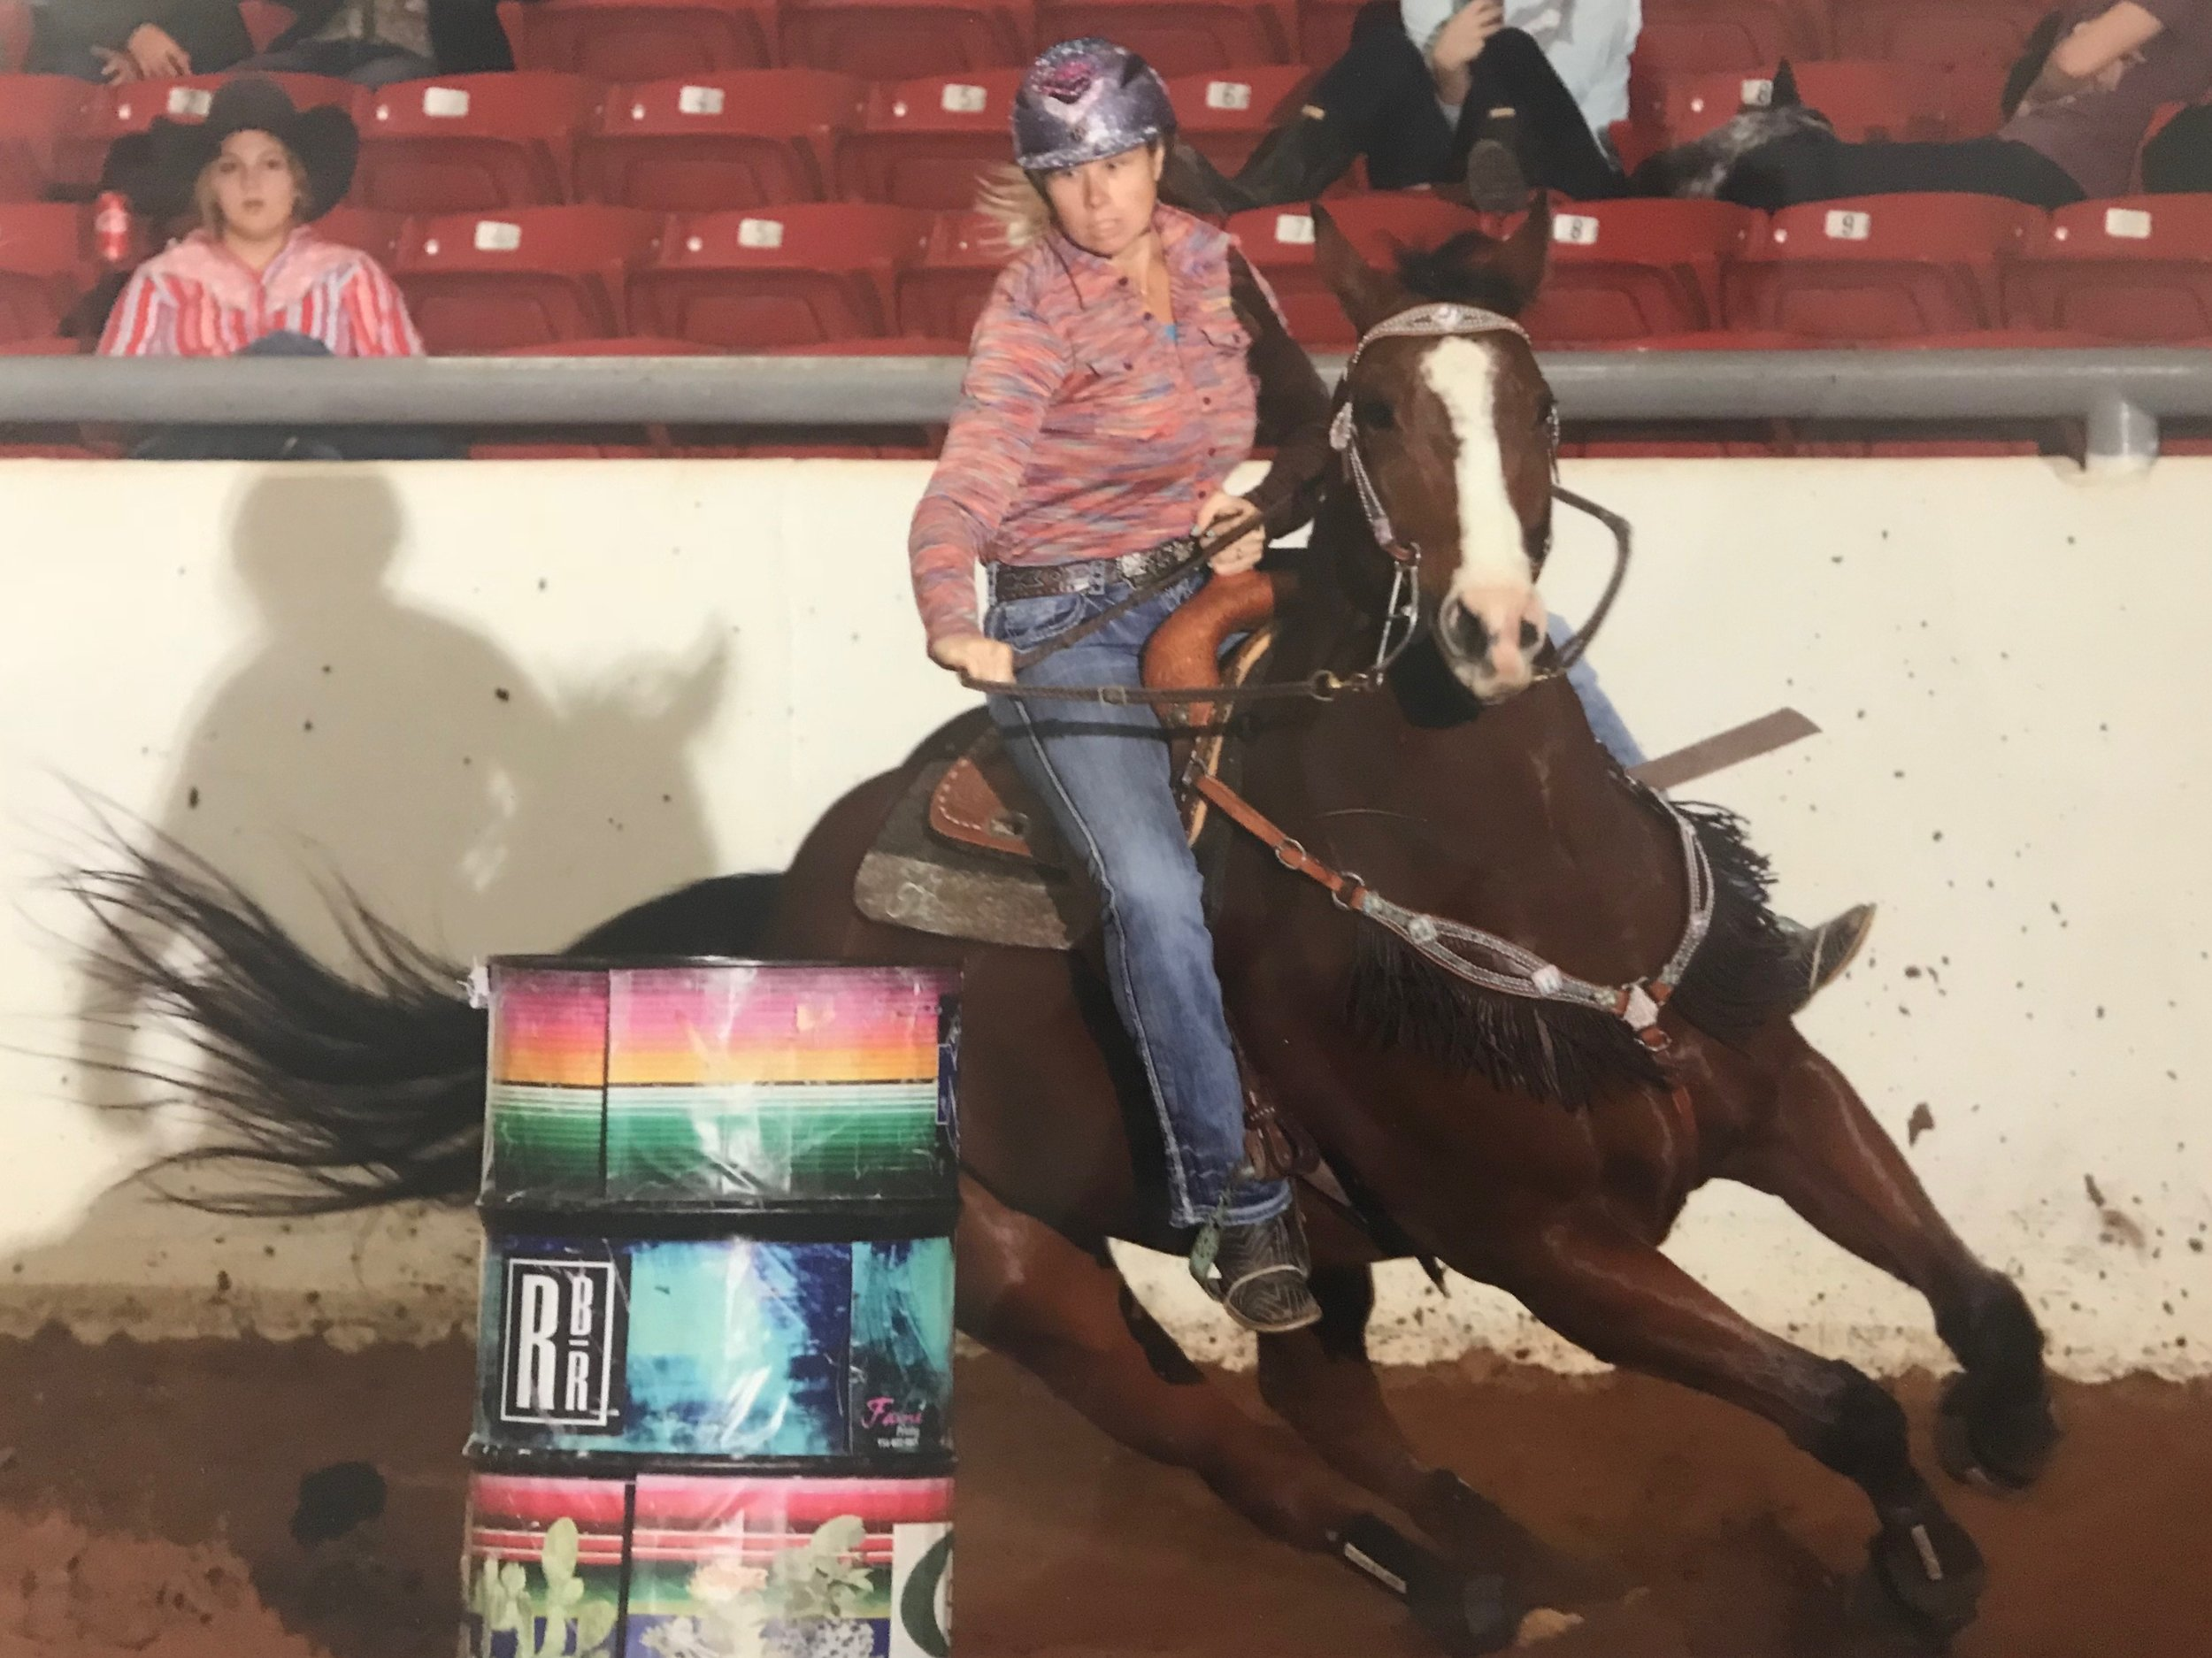 "Tylena Pagel - ""Jackie has been an incredible professional resource over the last few years. She is a wealth of knowledge in every aspect of horsemanship and barrel racing. Not to mention her vast insight into horse breeding, finding the right tack, fitting saddles to the rider, and all around hints to help you be better than you thought you could be.Her personal but professional approach to applying her triumphs and failures to help you improve your runs shows how invested she is in making you the most competitive barrel racer you can be."""